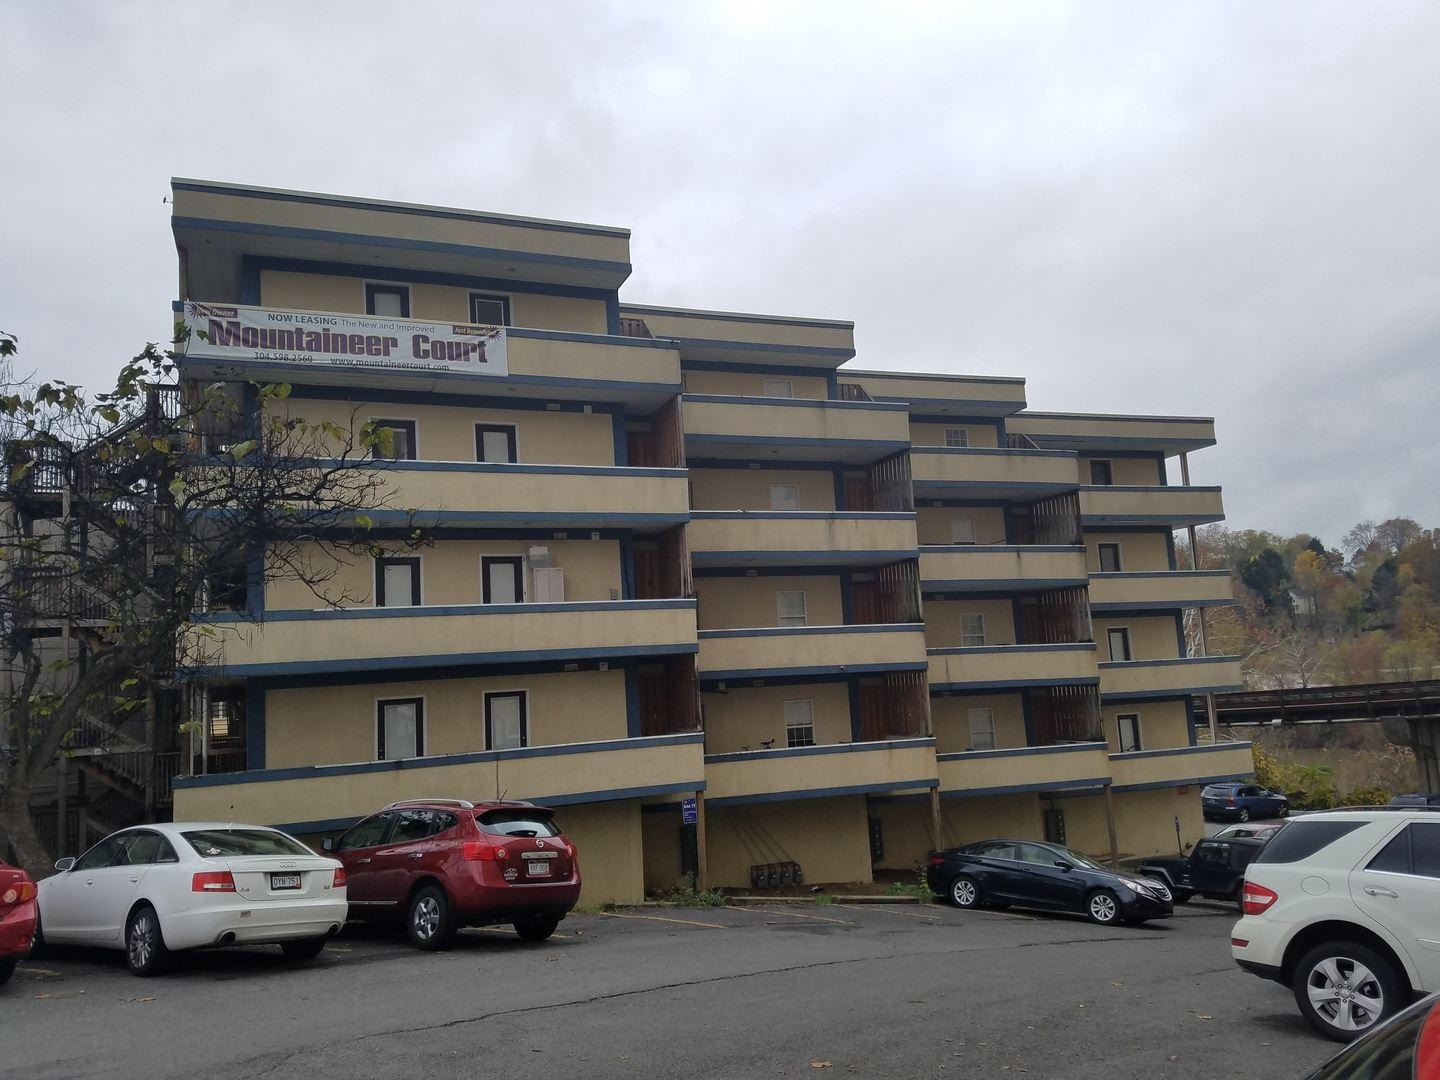 Apartments For Rent Downtown Morgantown Wv